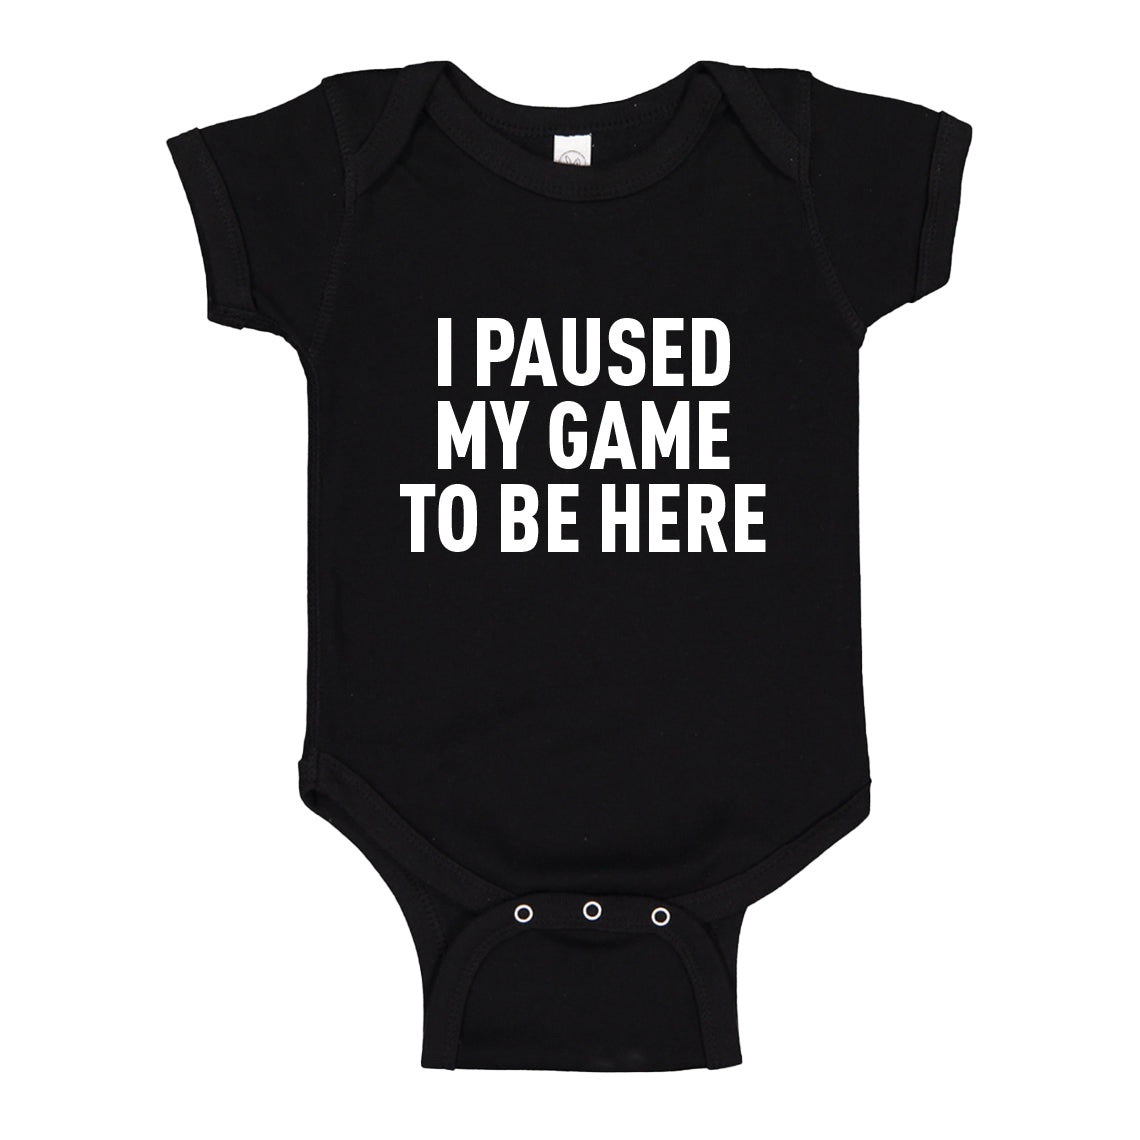 Baby Onesie I Paused My Game to Be Here 100% Cotton Infant Bodysuit